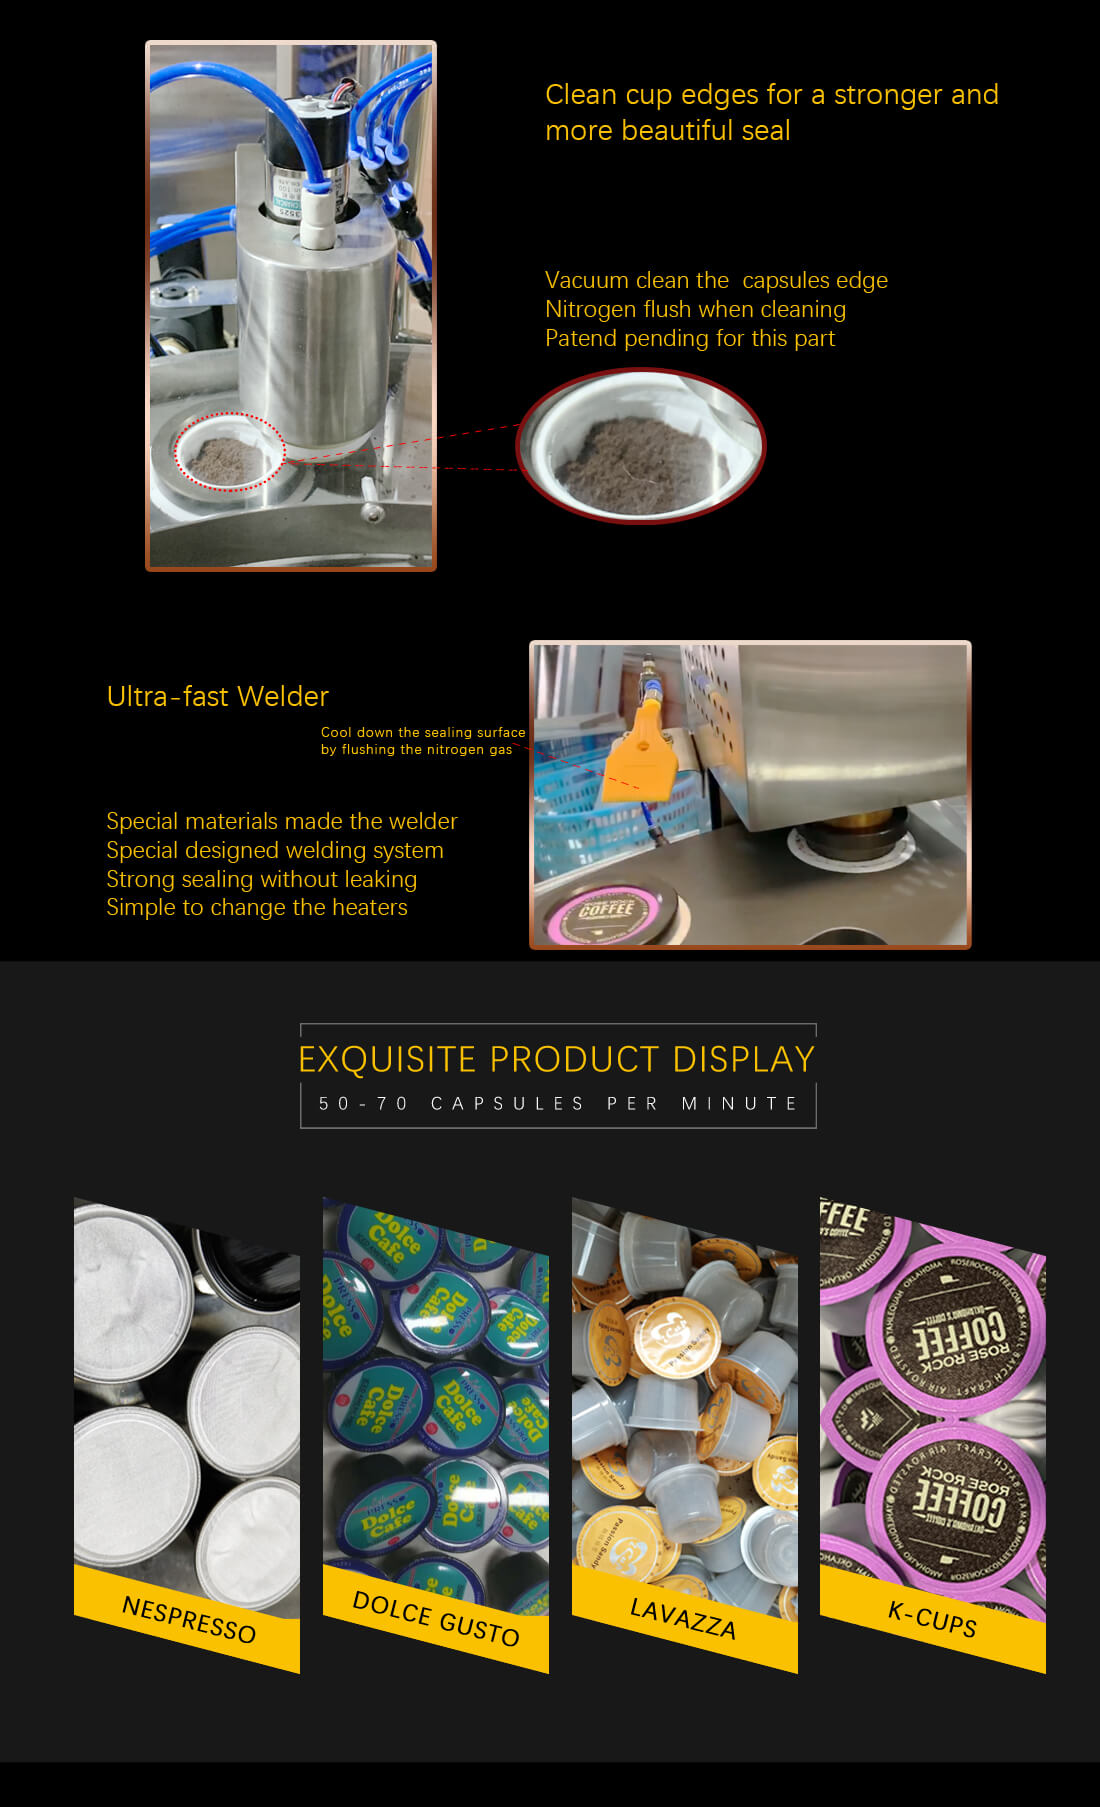 rotary nespresso capsules filling sealing packaging machine